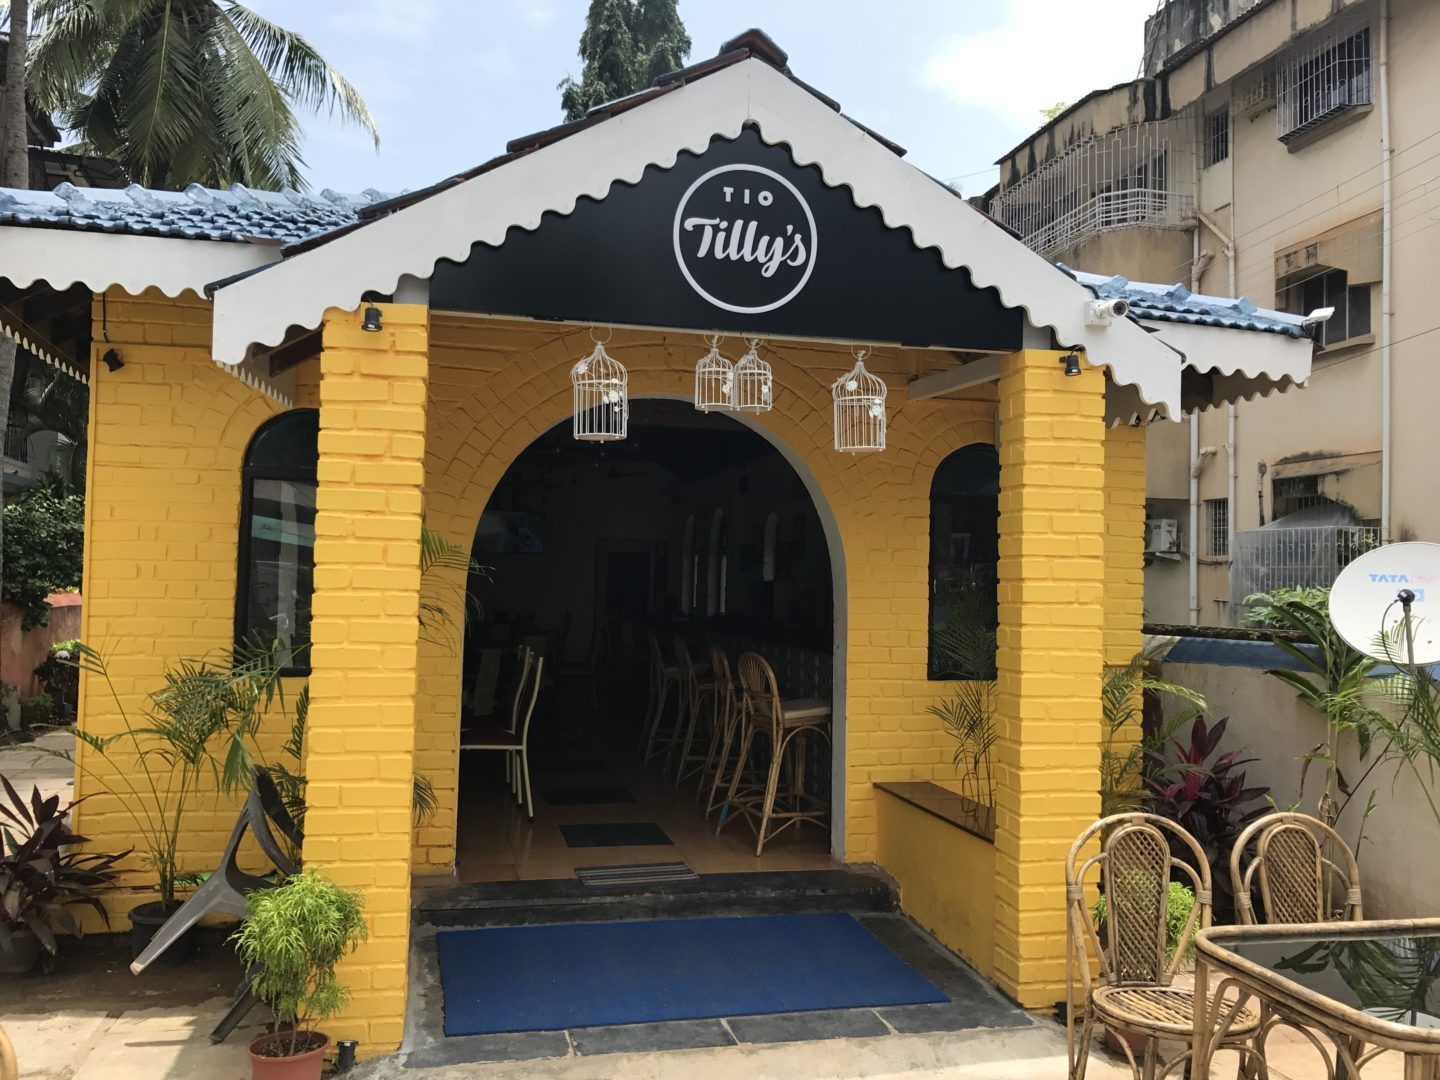 Of Burgers and Pizzas at Tio Tilly's, Goa